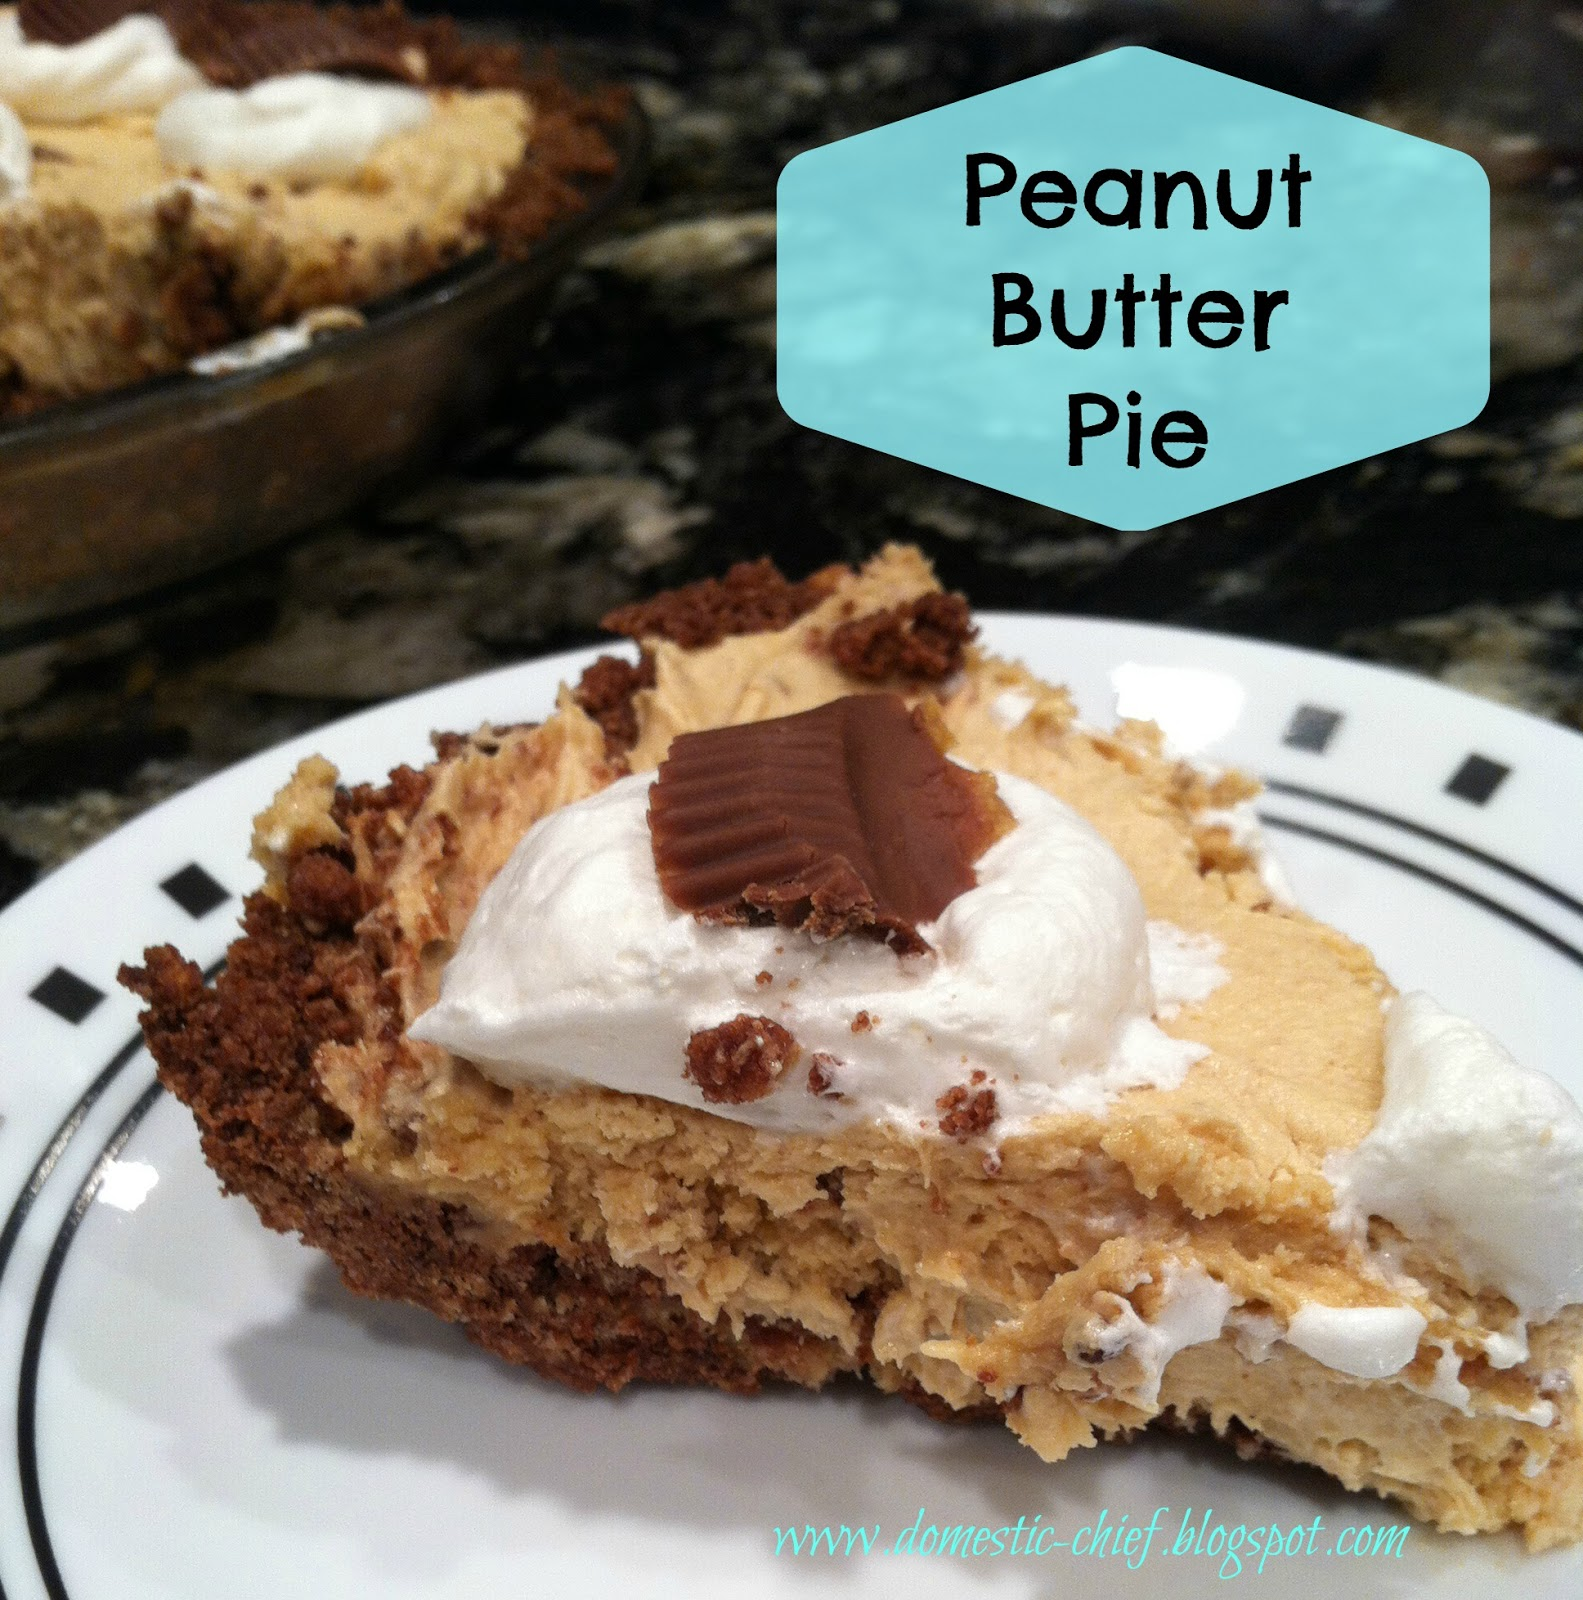 Chief Domestic Officer: Peanut Butter Pie